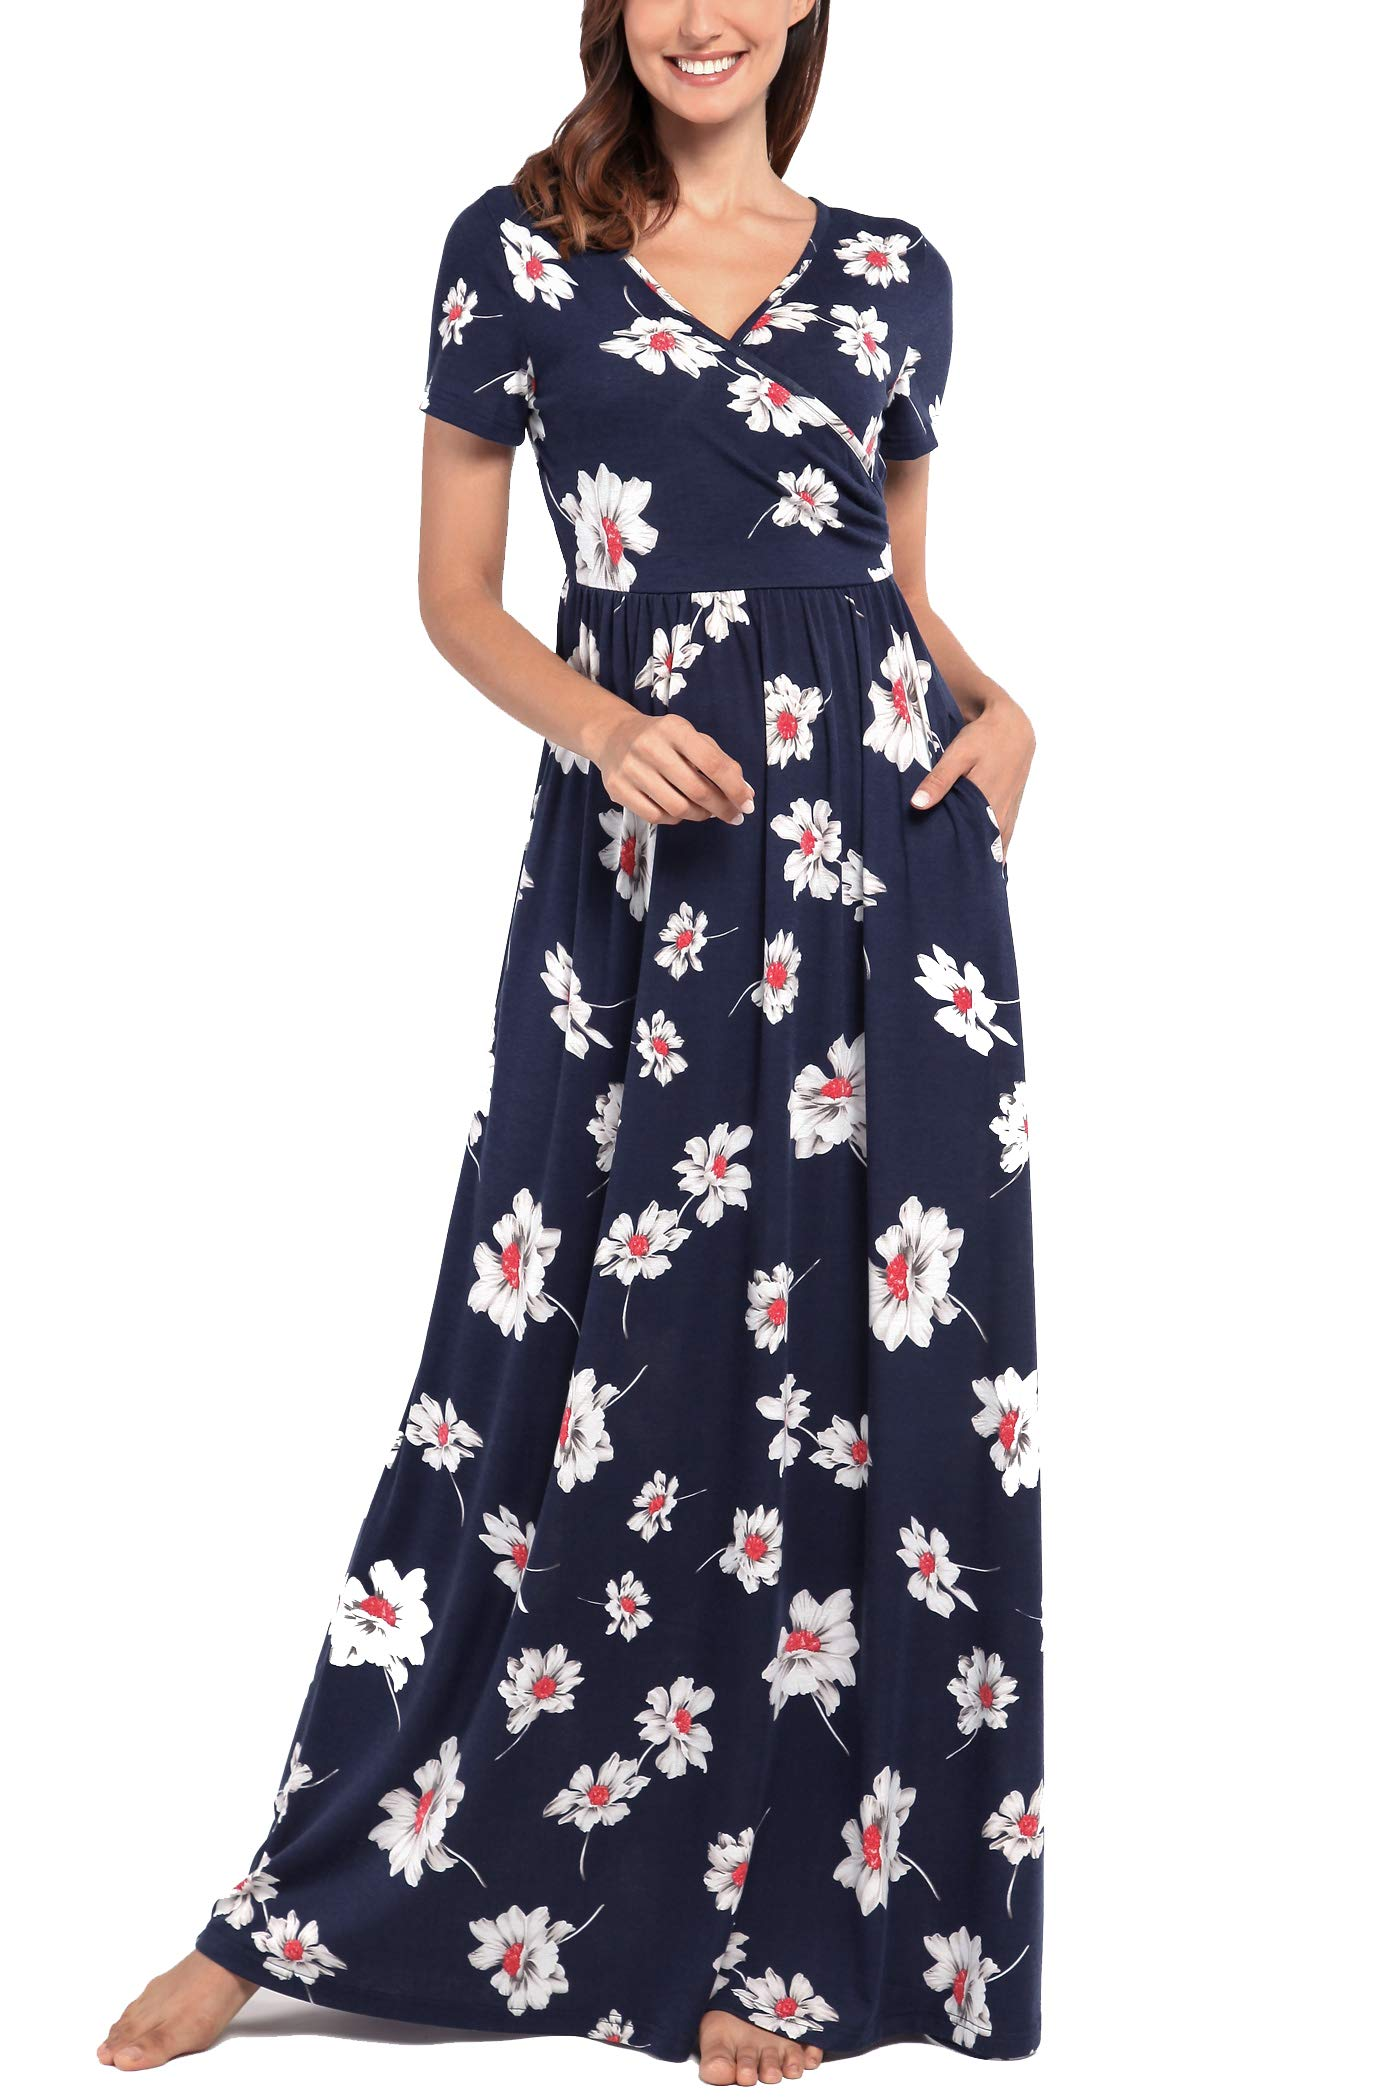 Comila Maxi Dresses for Women Short Sleeve, Ladies Wrap Long Dresses Fashion V Neck Summer Maxi Dress A Line Casual Wedding Dress with Pockets Dark Blue XL (US 16-18)